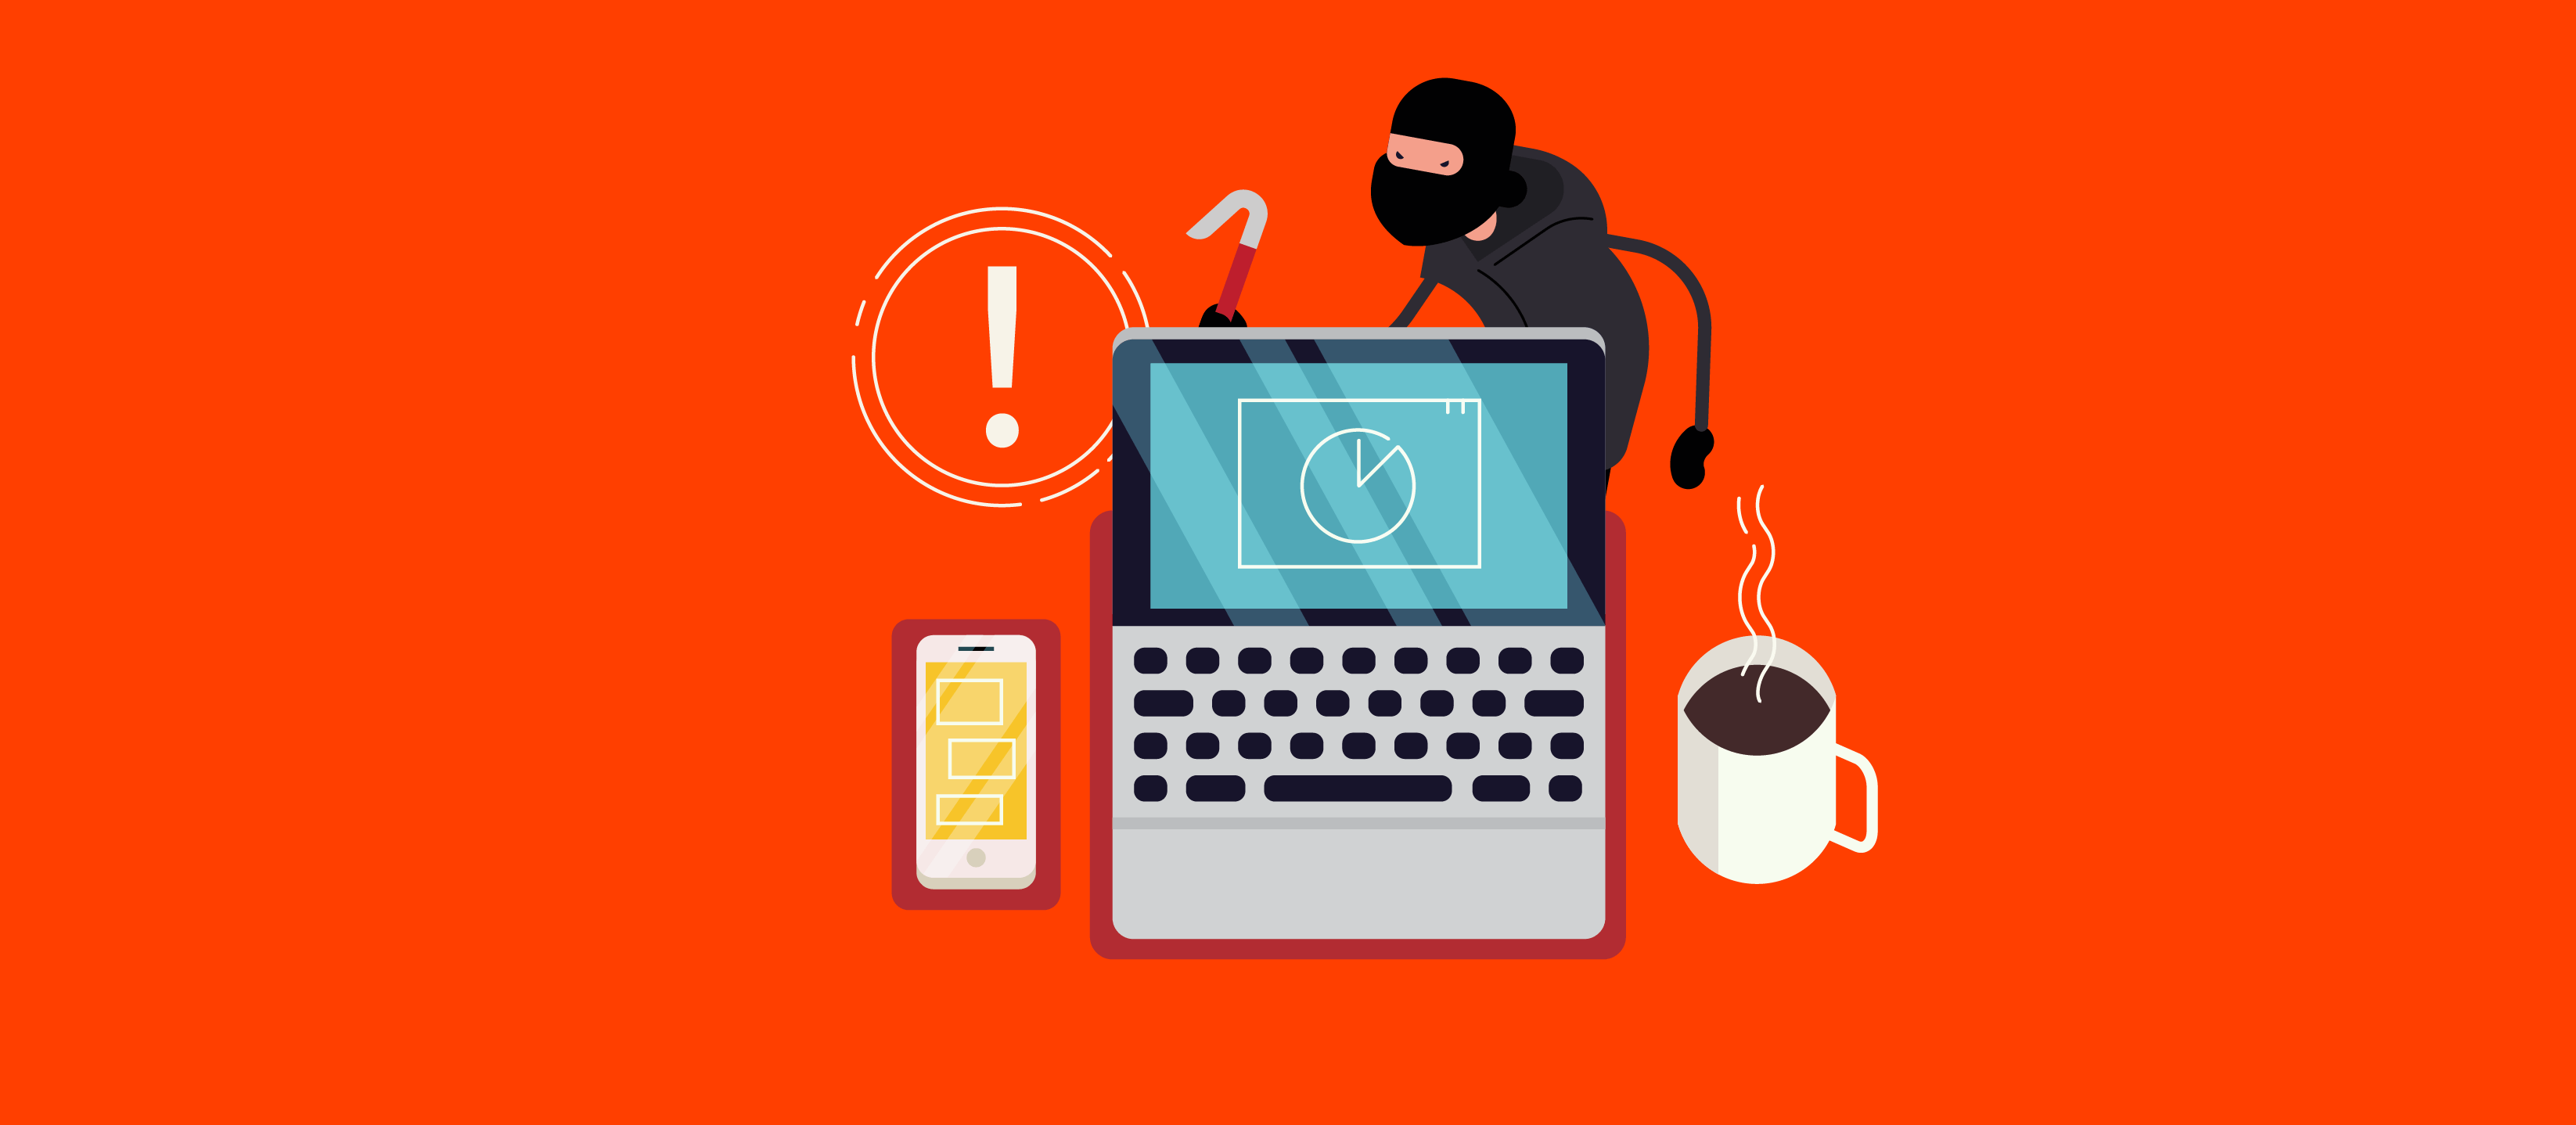 Cybercrime: Which ones are the most common threats today?